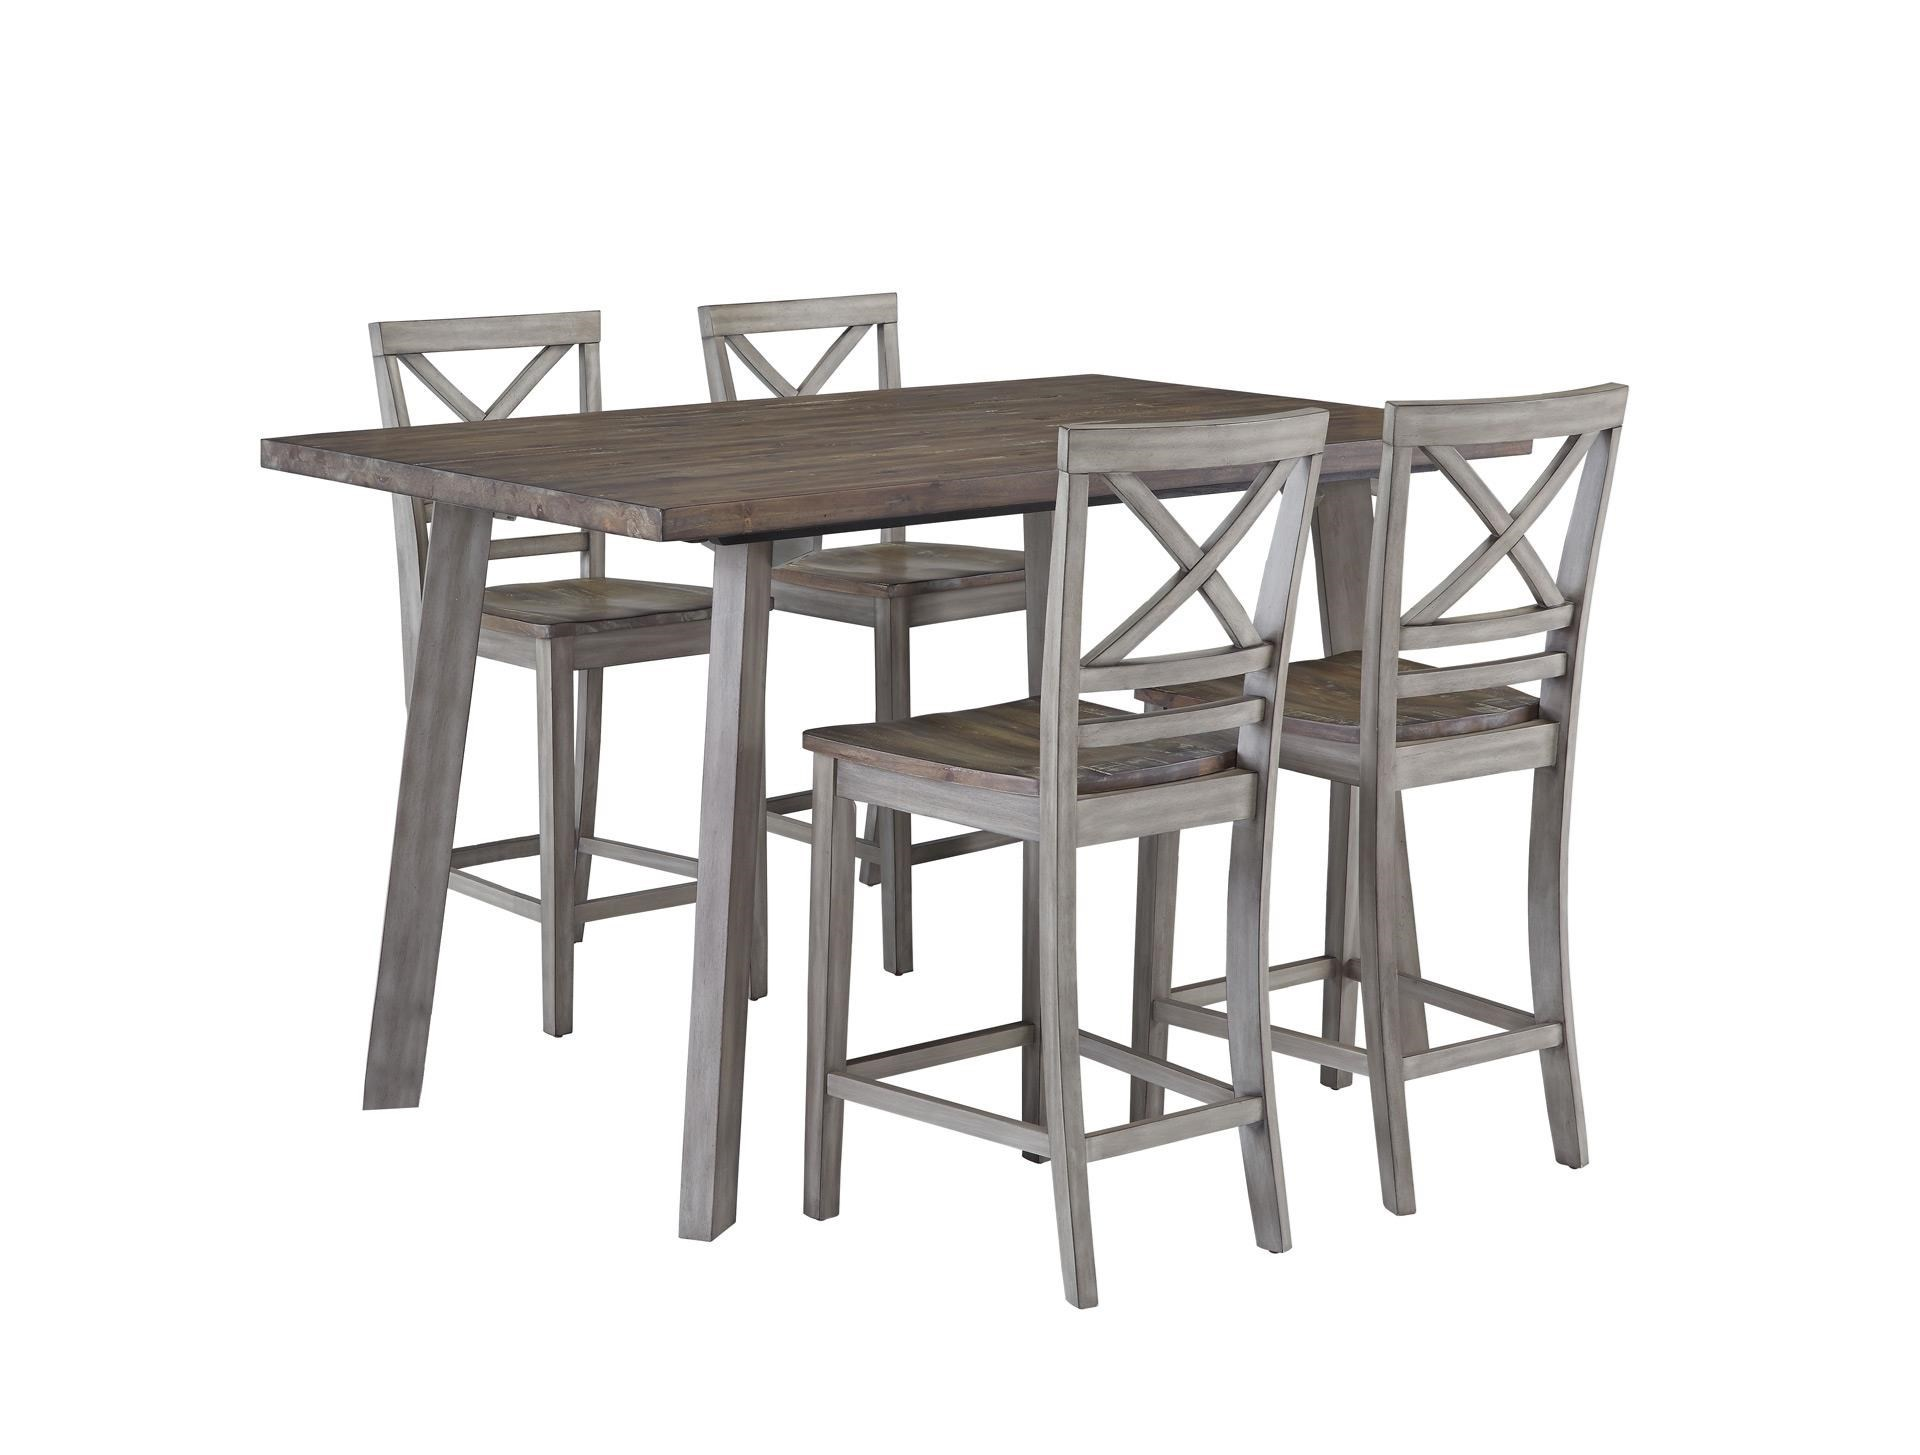 Standard Furniture FairhavenCounter Table u0026 Chair Set ...  sc 1 st  Great American Home Store & Standard Furniture Fairhaven 12872 Counter Table u0026 4 Counter Chairs ...